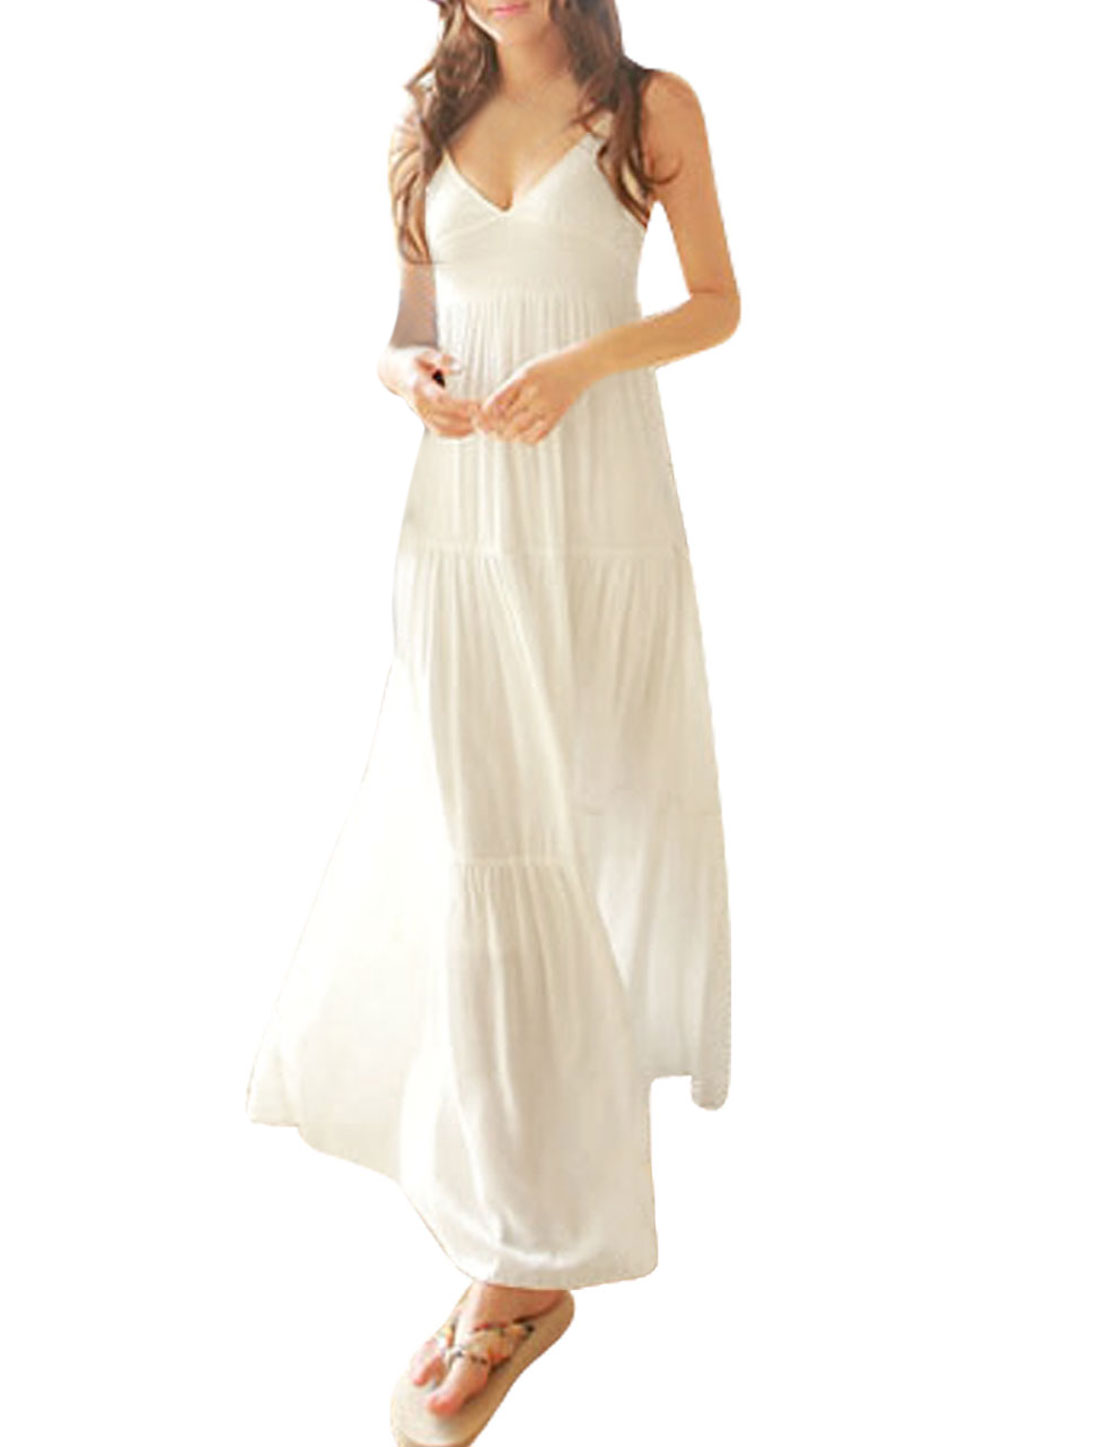 Women Deep V Neck Slip Strap Bohemian Full Length Spaghetti Dress White XS